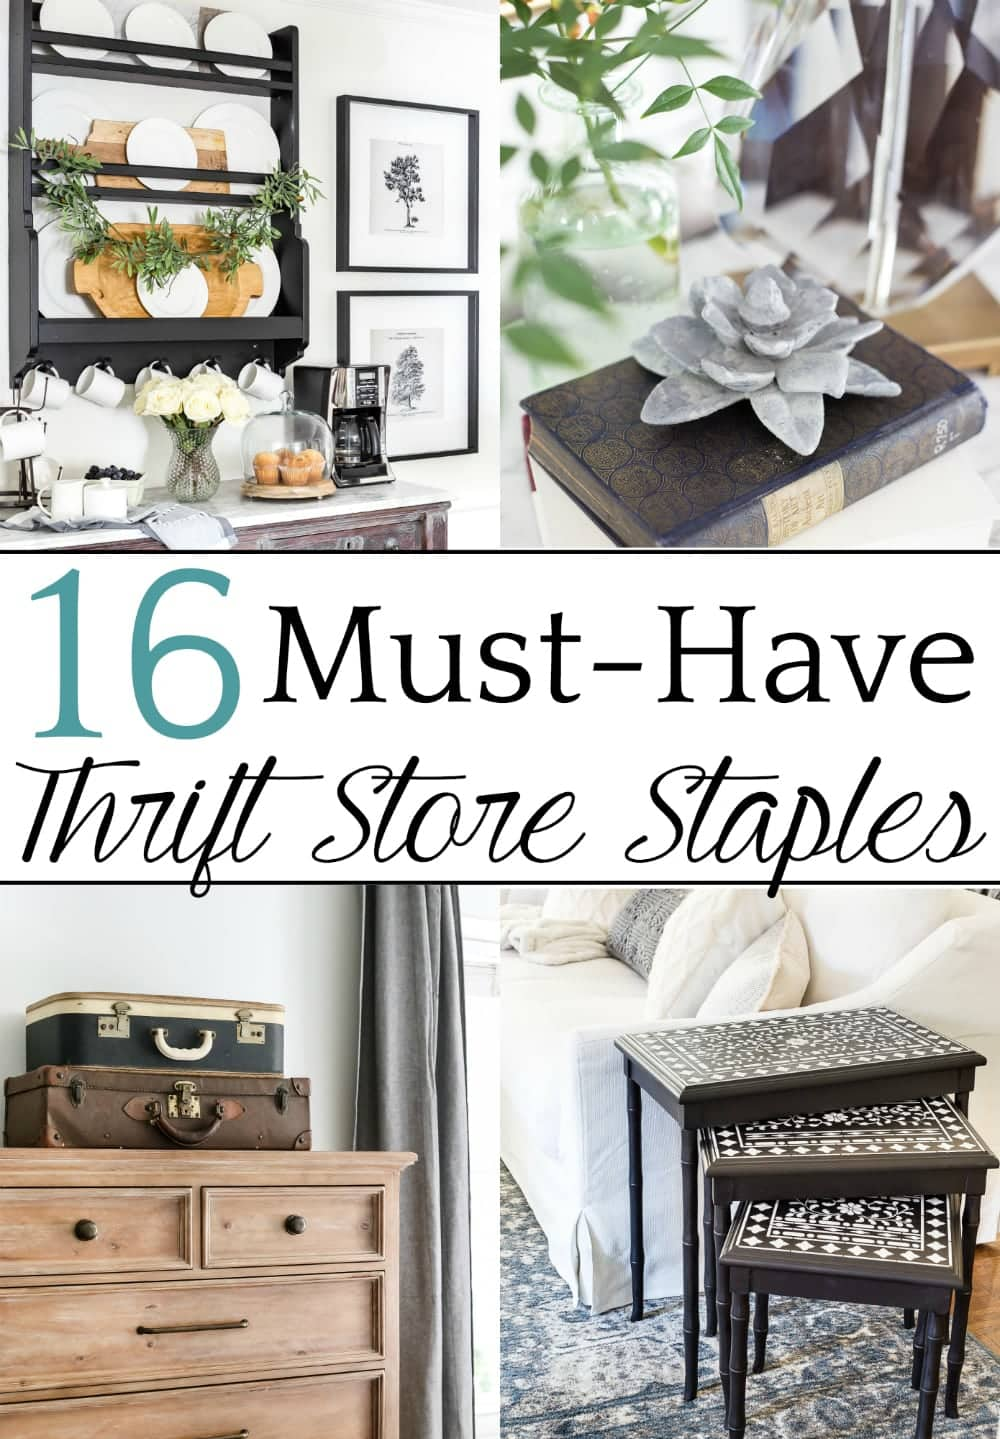 Top 10 Home and DIY Blog Posts of 2018 | 16 Must-Have Thrift Store Staples for Your Home